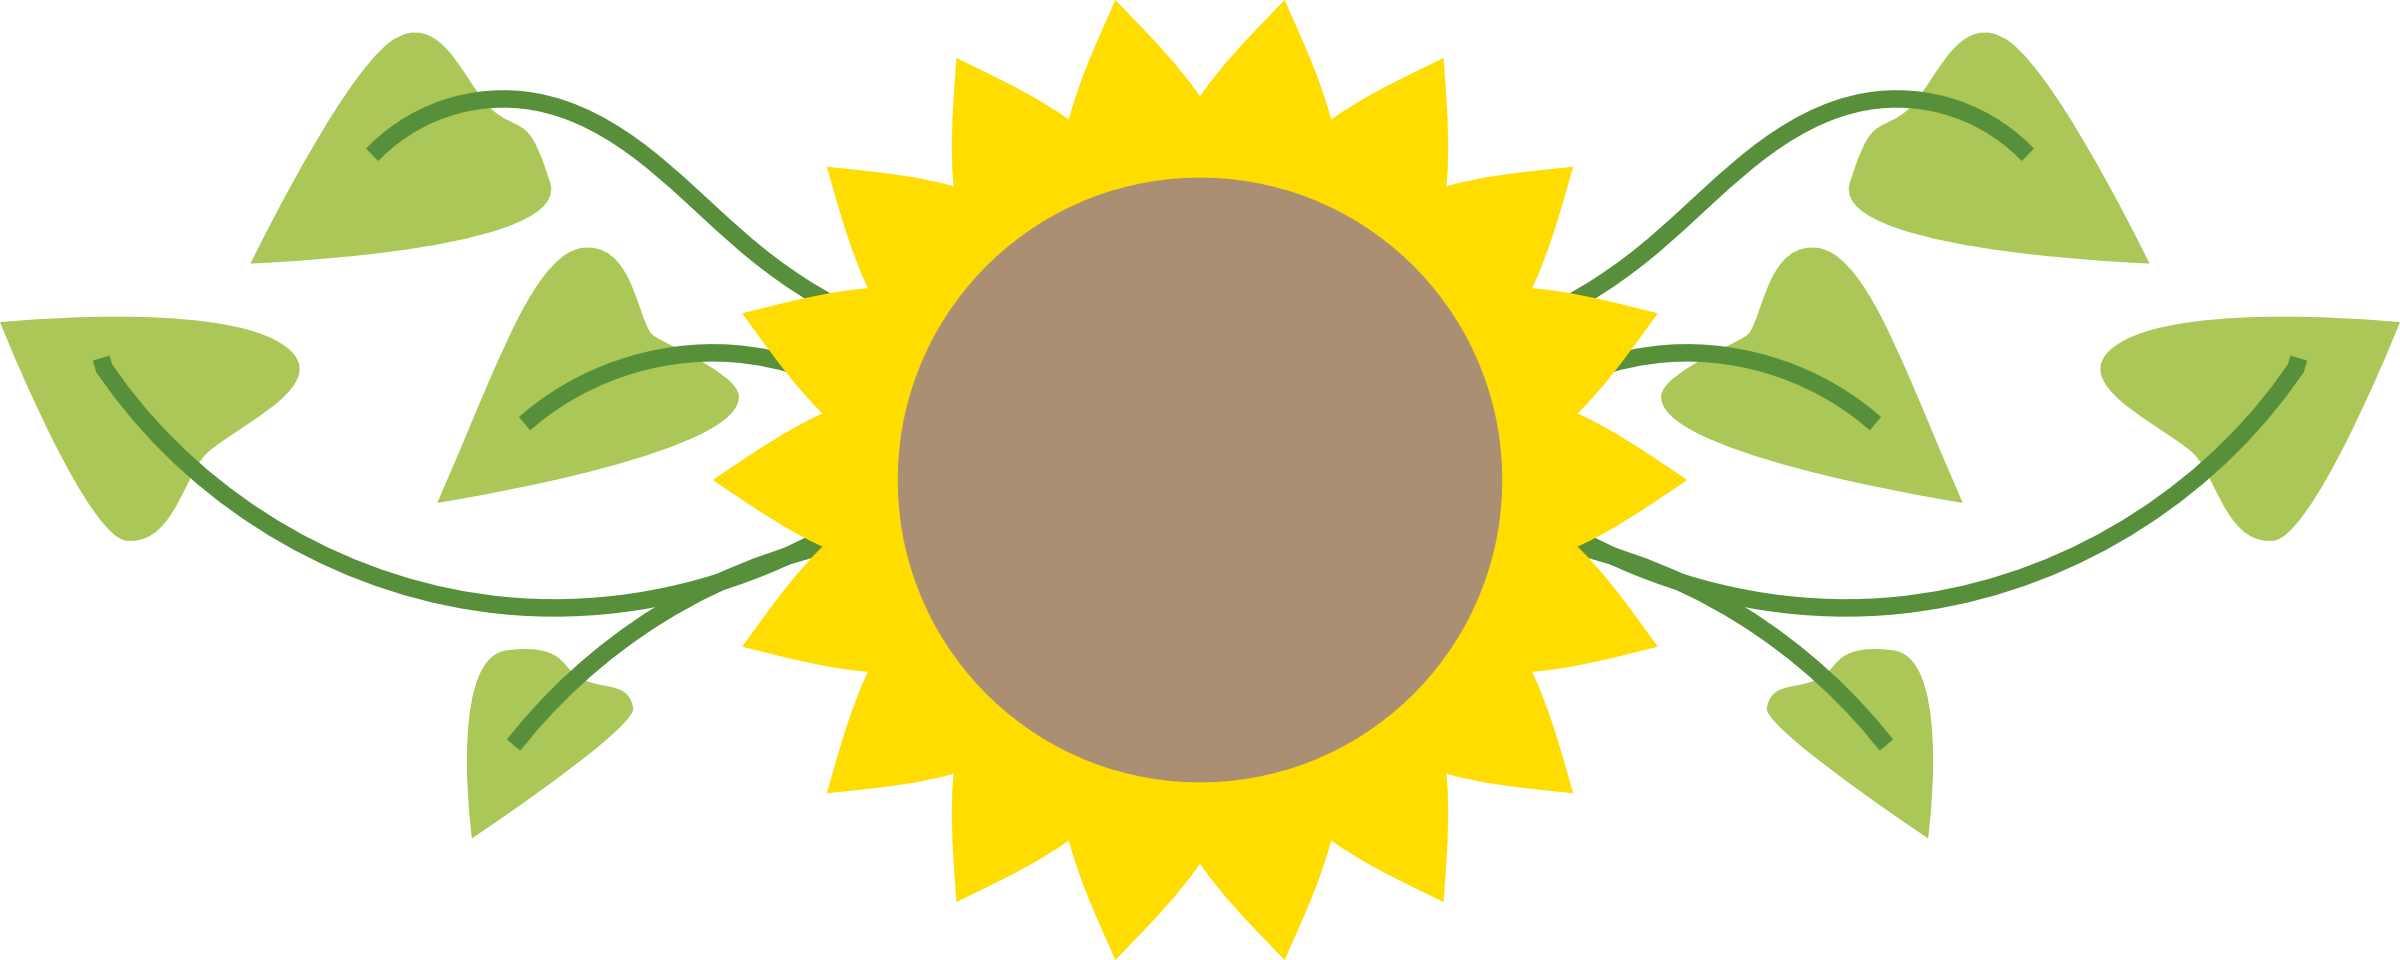 Frame clipart sunflower Border Clipart Clipart Free Images